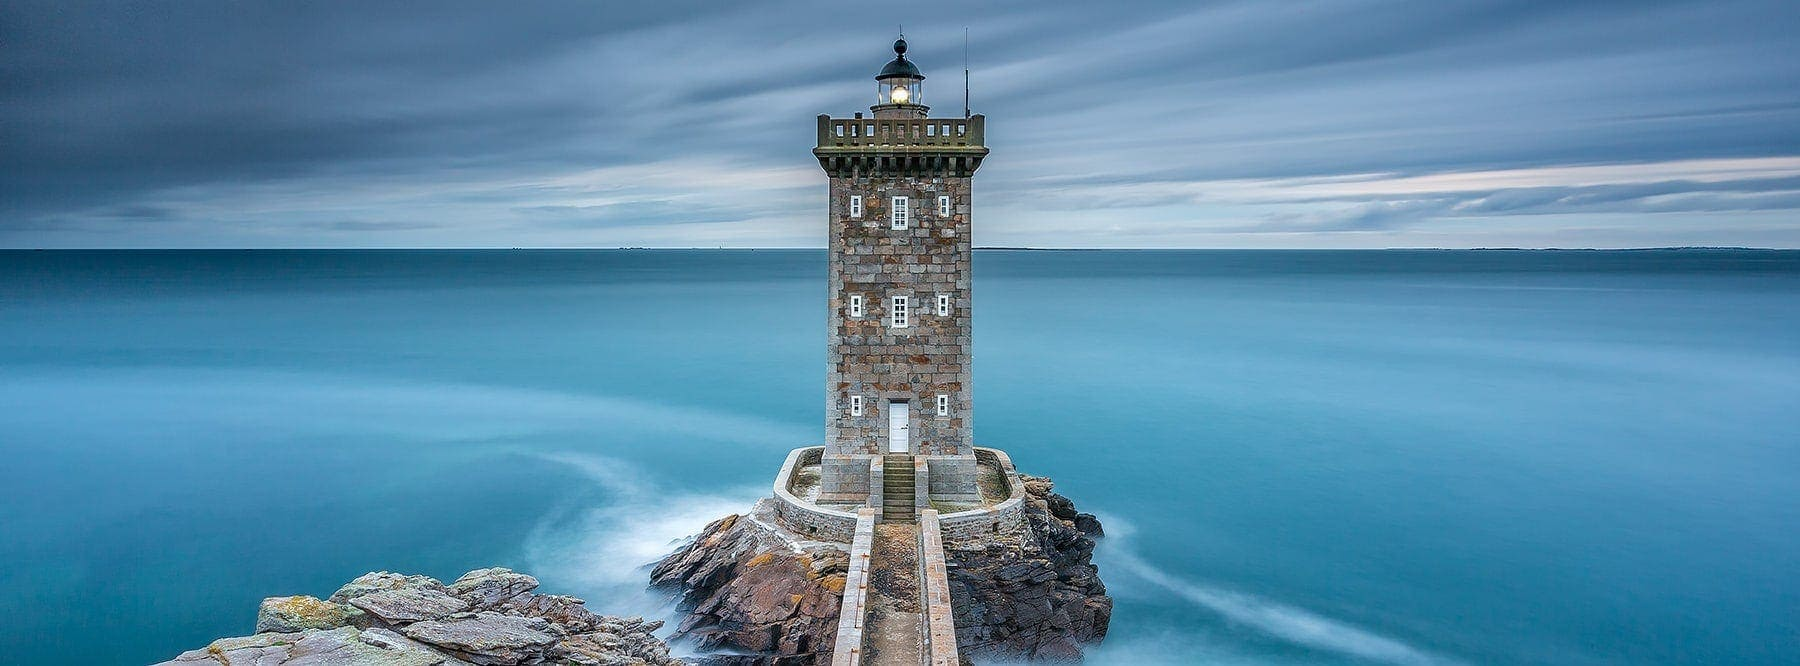 Brittany France Lighthouse Seascape Landscape Photography Workshop